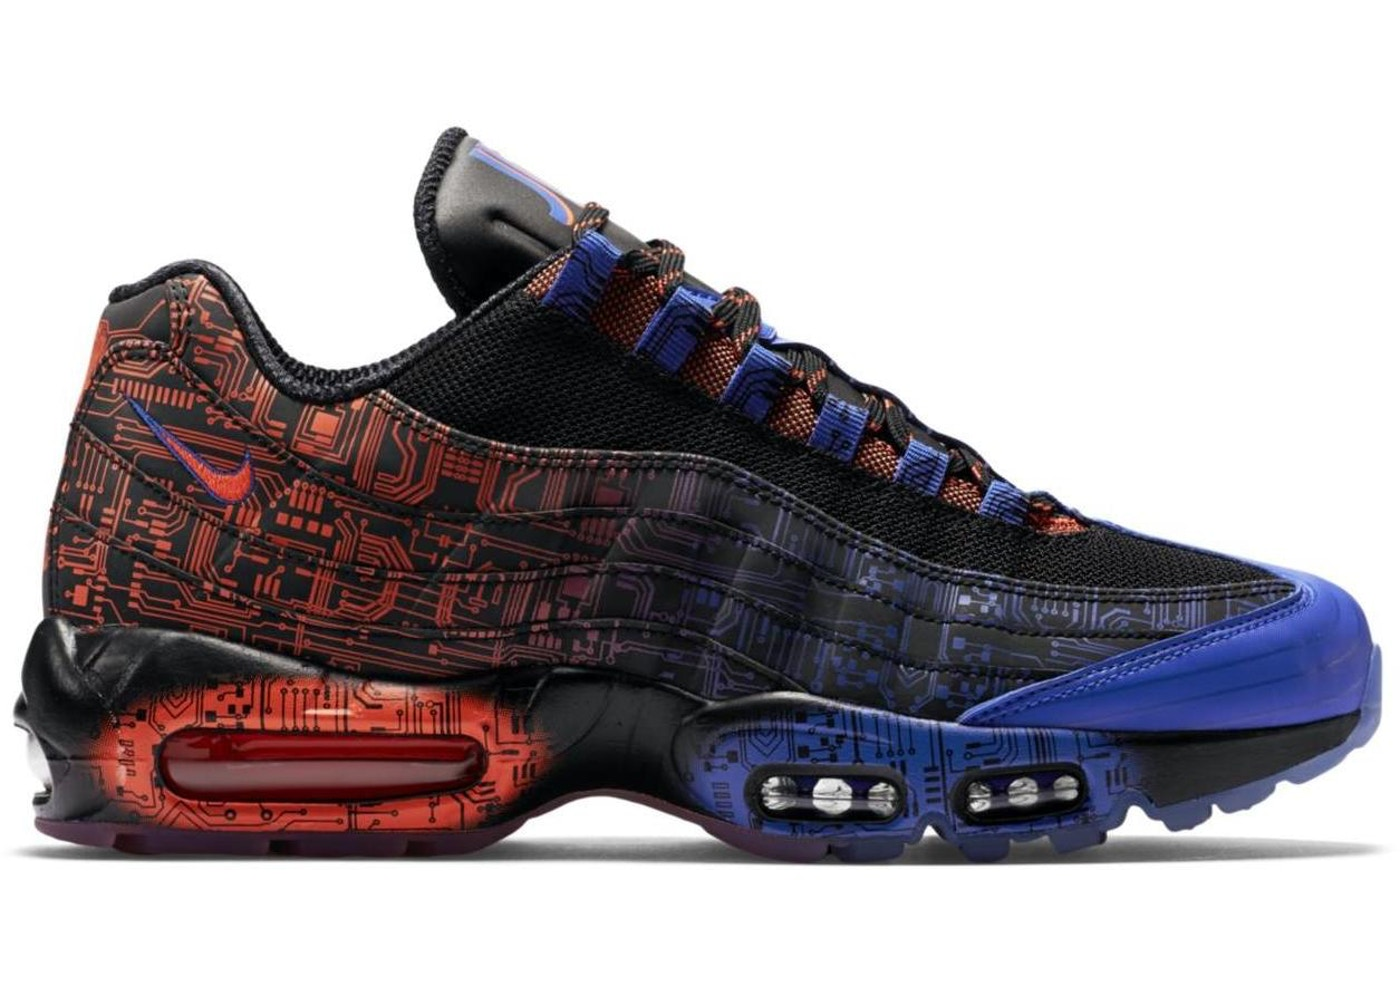 Air Max 95 Doernbecher (2015) - 839165-064 a8e9c6d5d